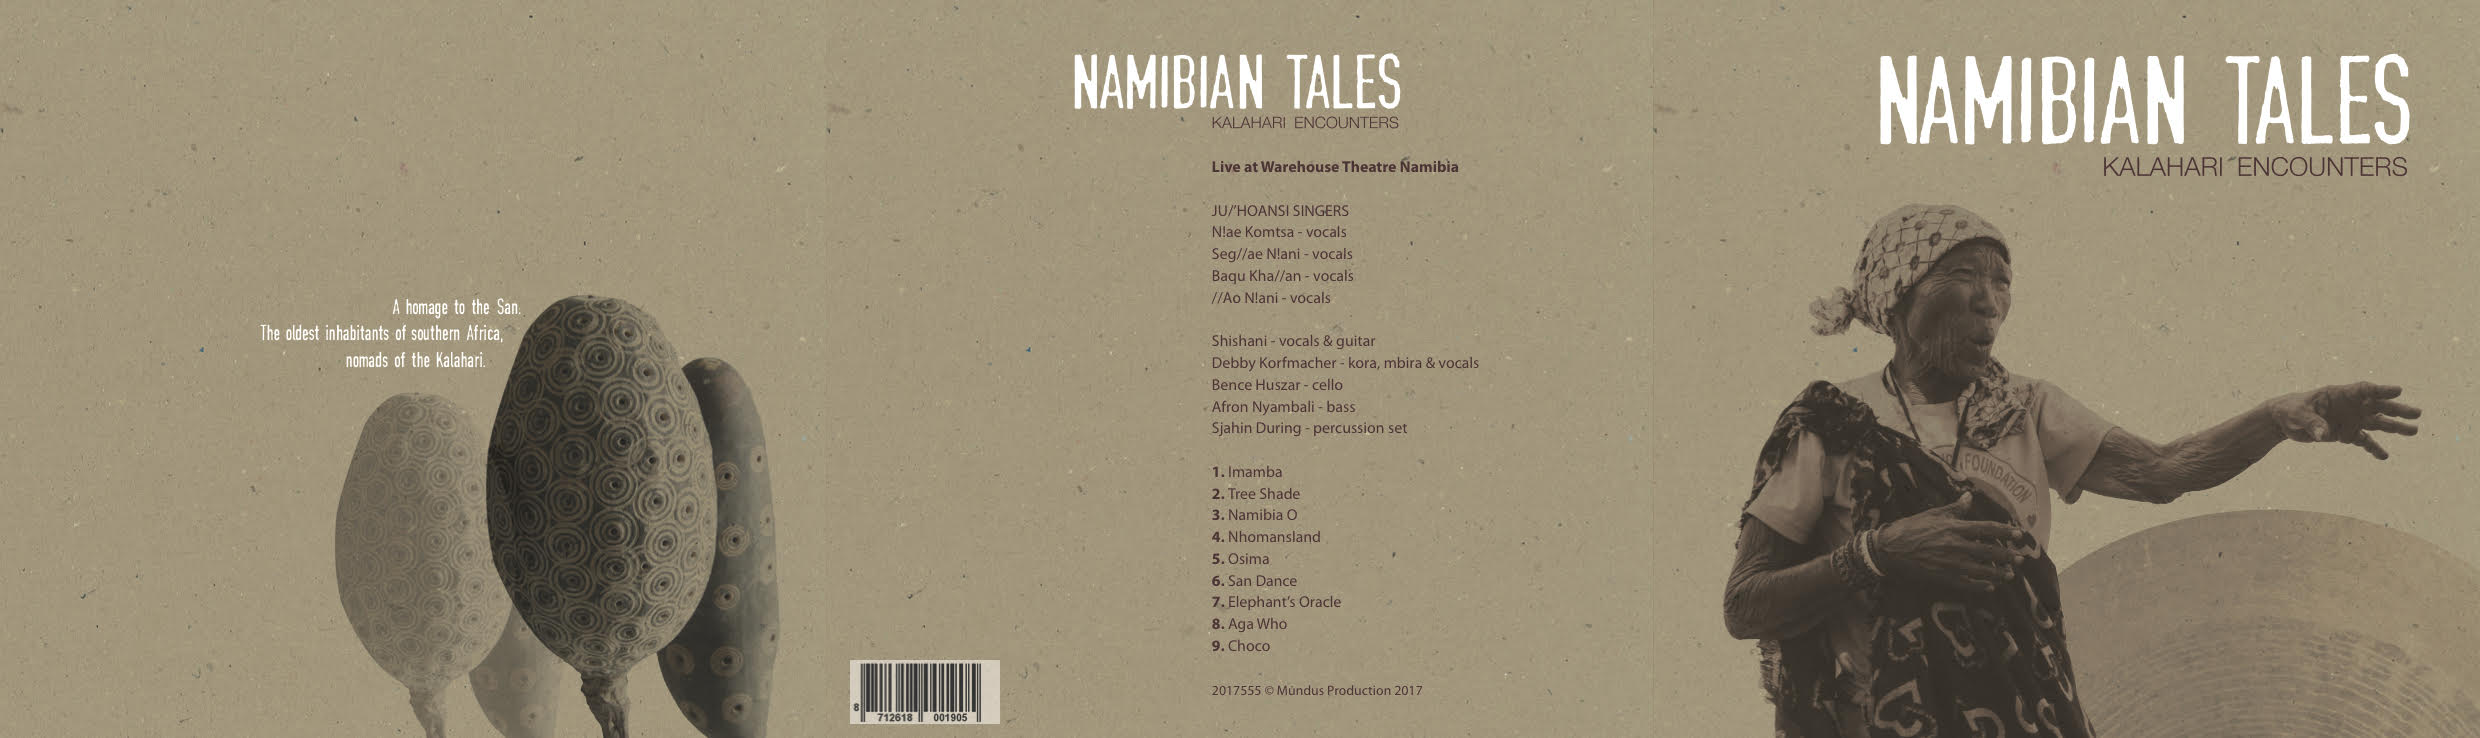 Namibian Tales - a homage to the San